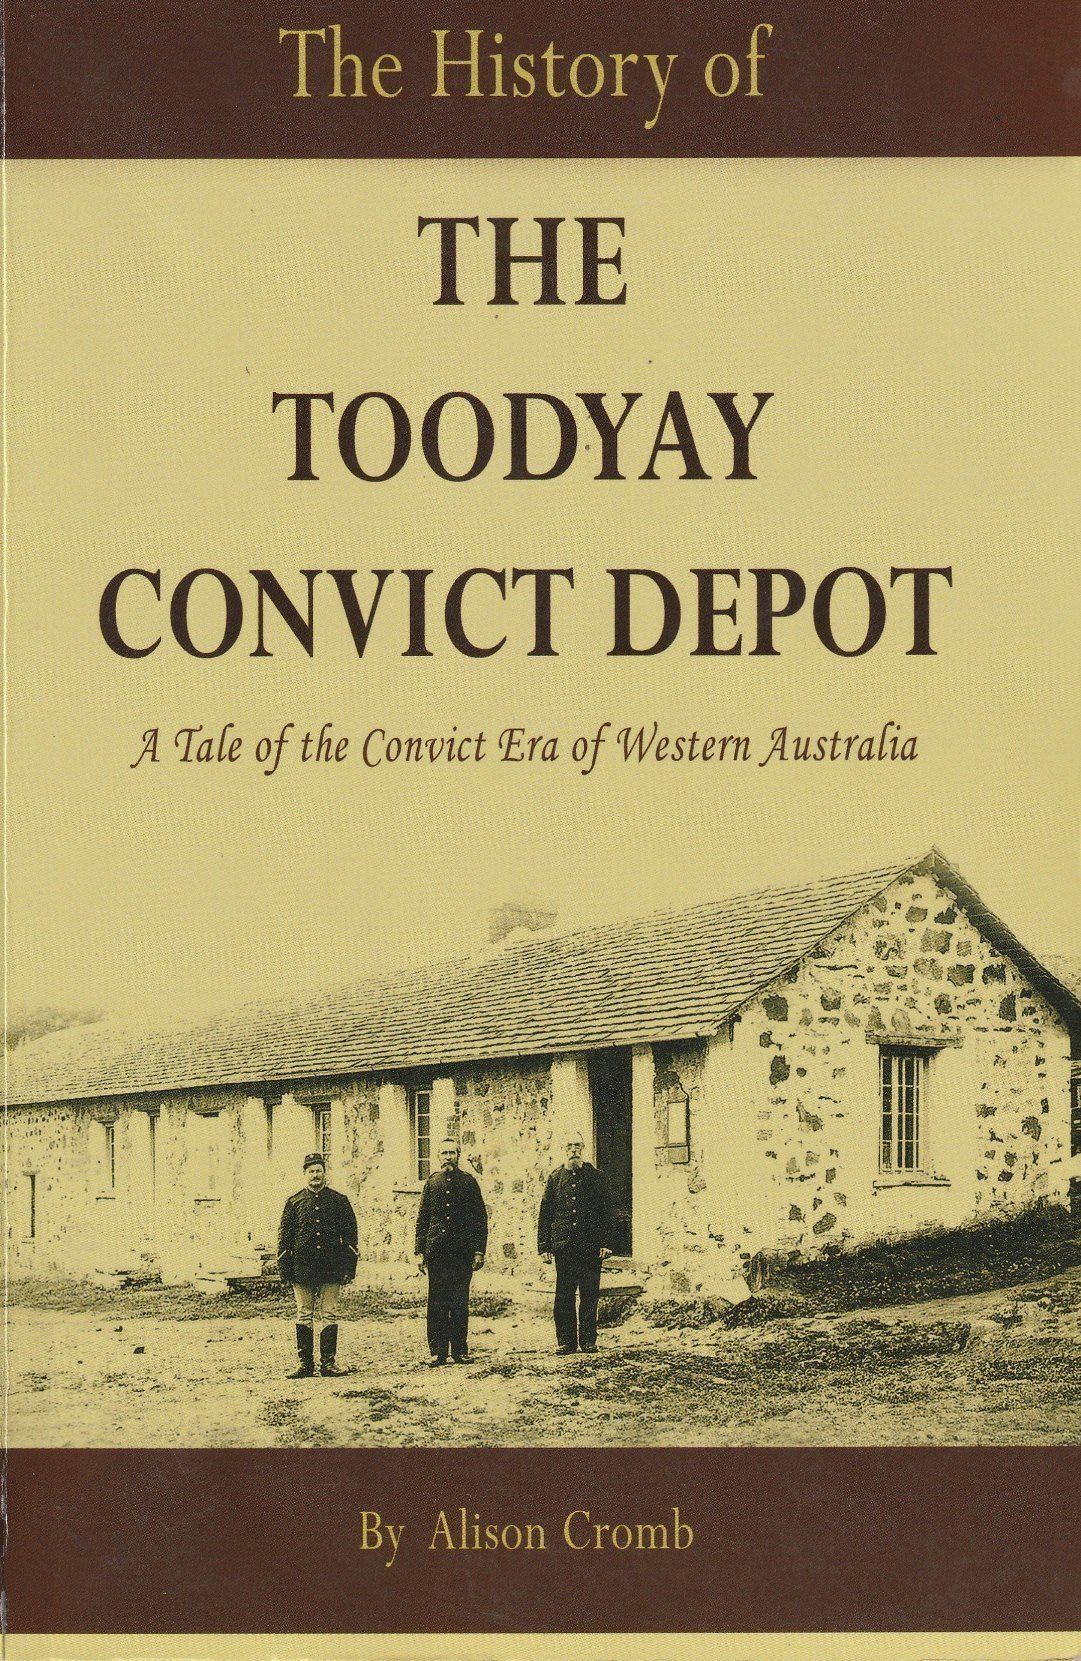 The history of the Toodyay Convict Depot: a tale of the convict era of Western Australia